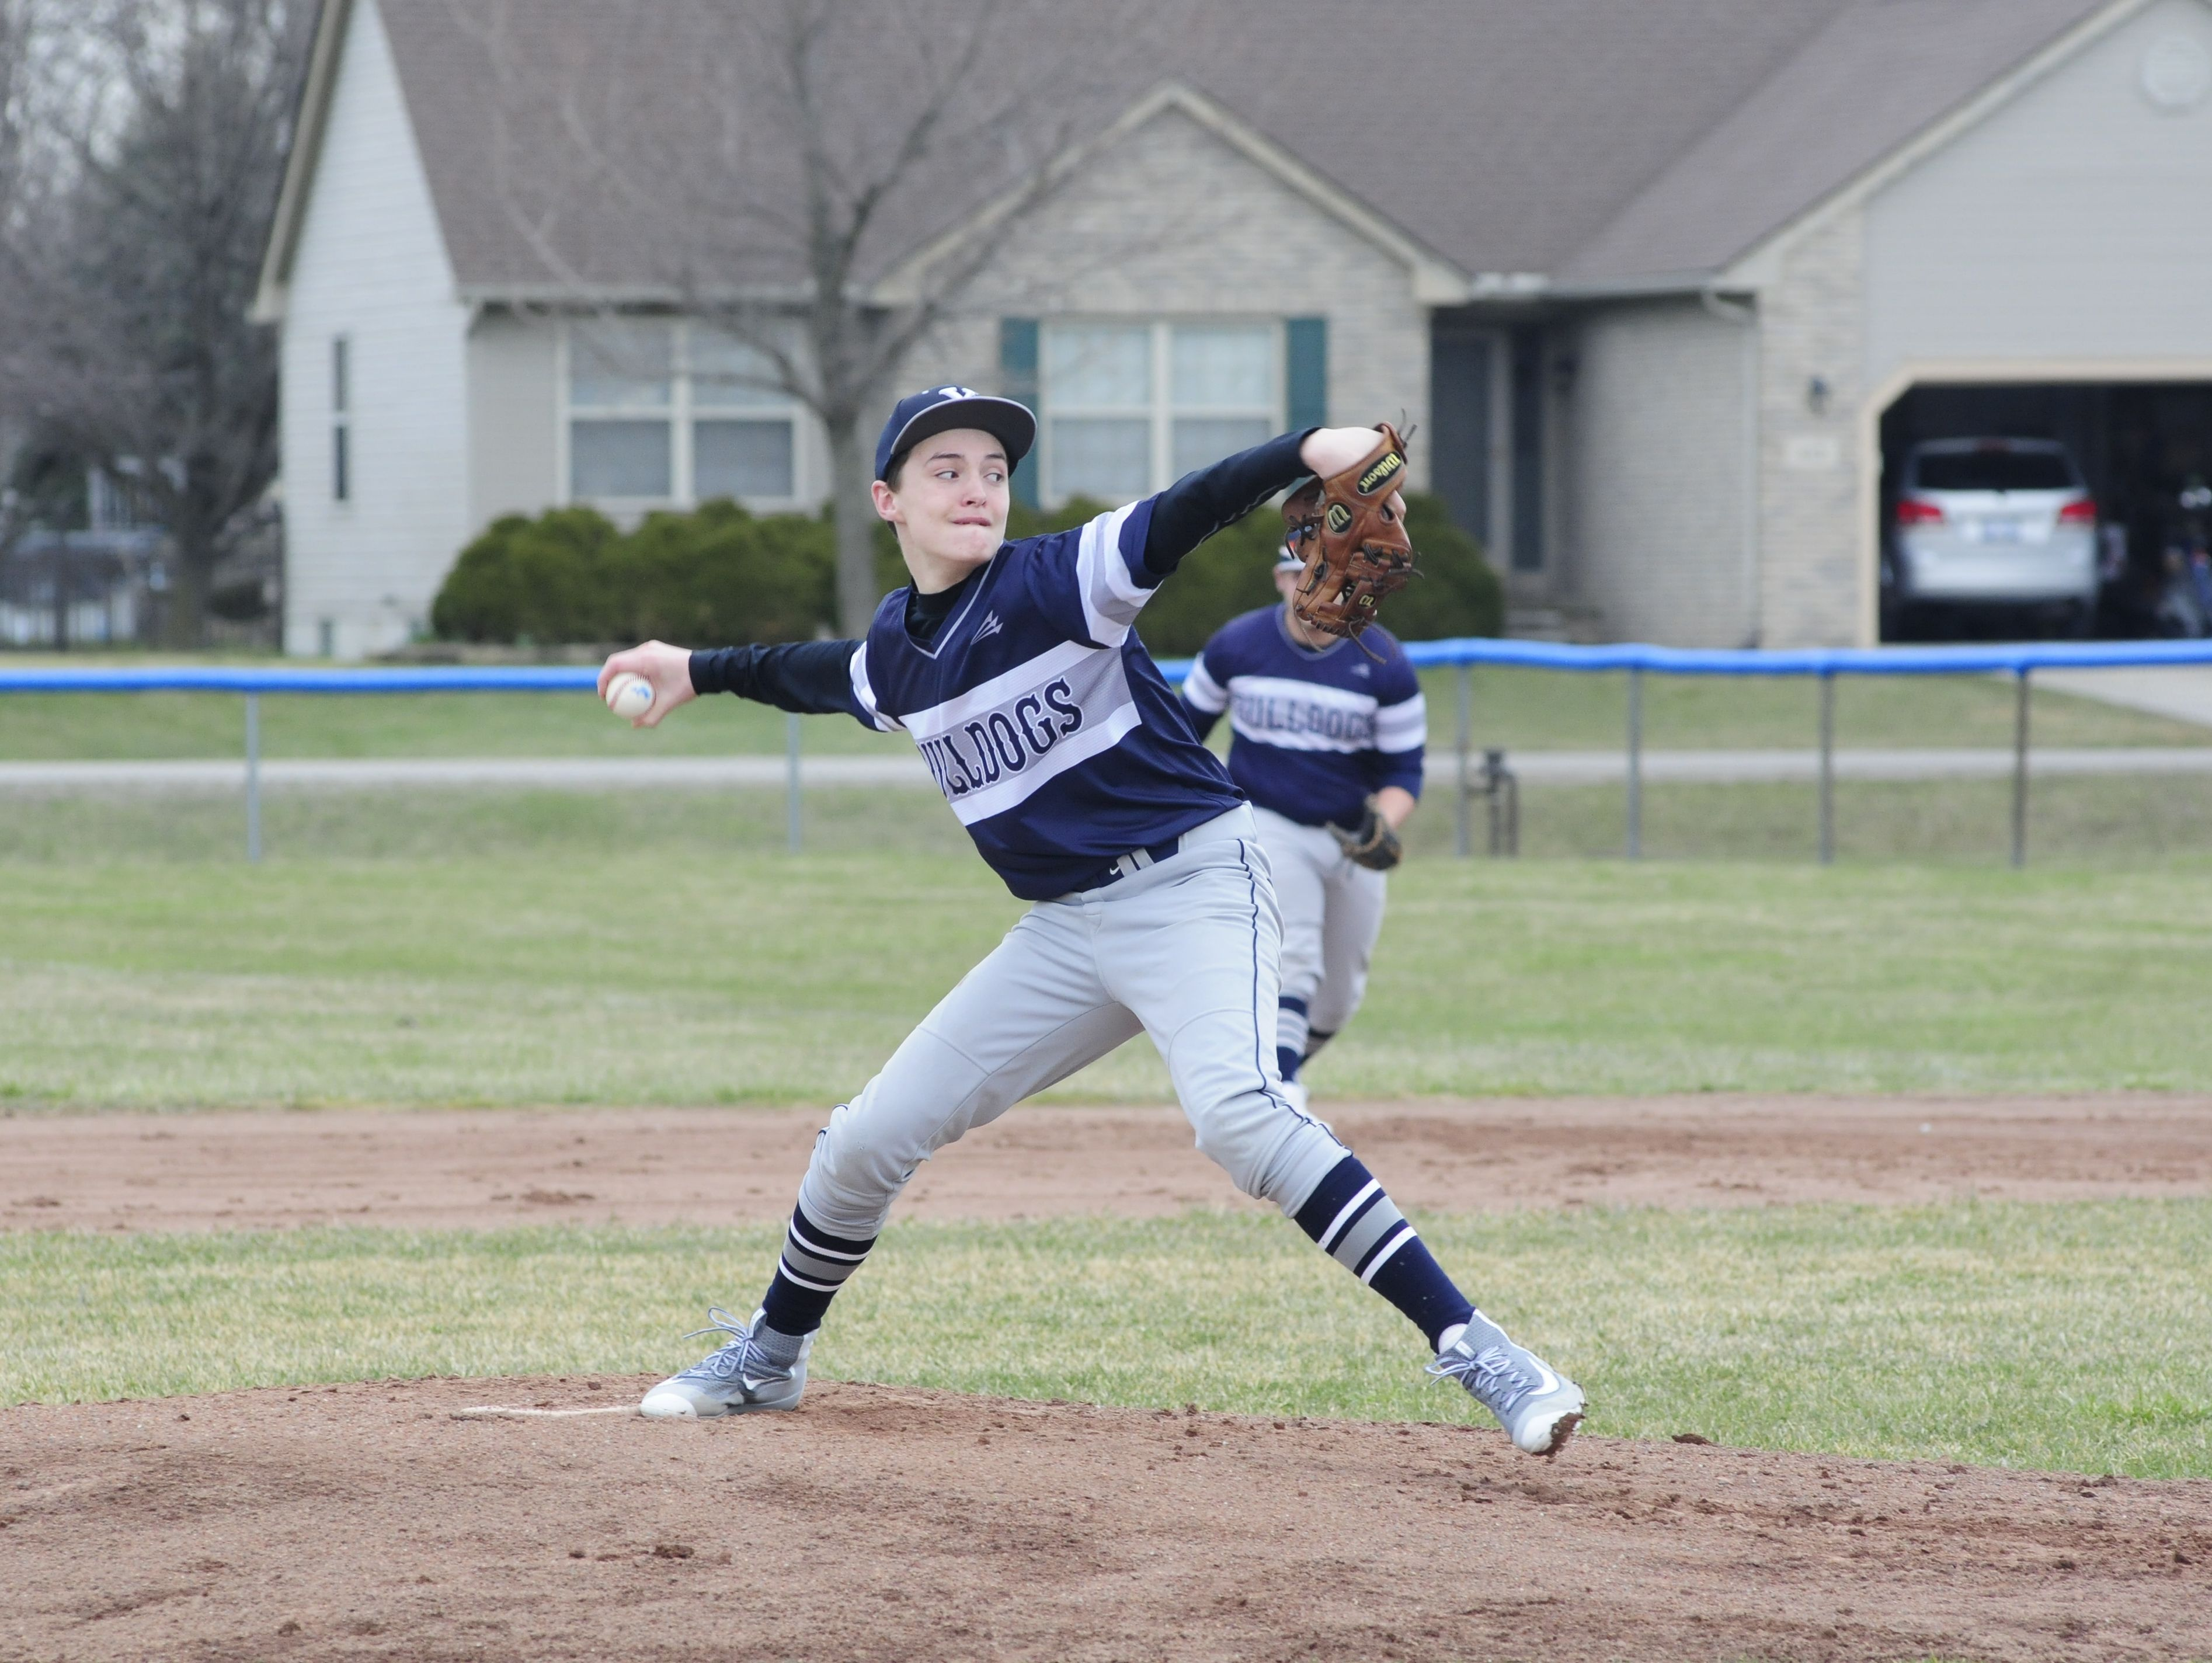 Yale sophomore Ryan Korolden throws a pitch against St. Clair on March 30, 2016 at St. Clair High School.